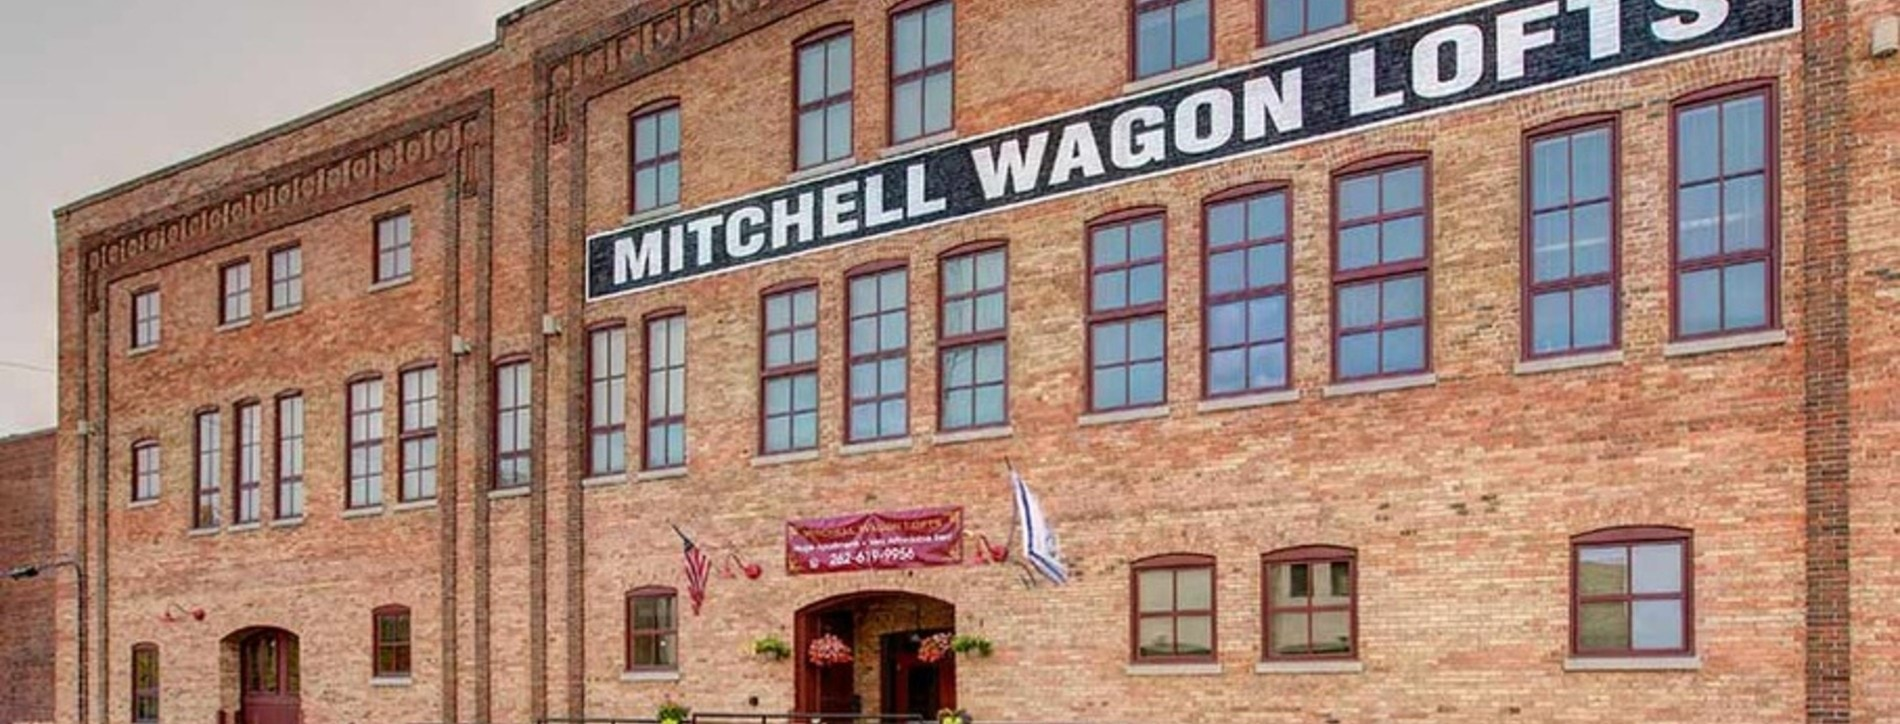 apartments for rent in racine wi mitchell wagon lofts home 1 2 3